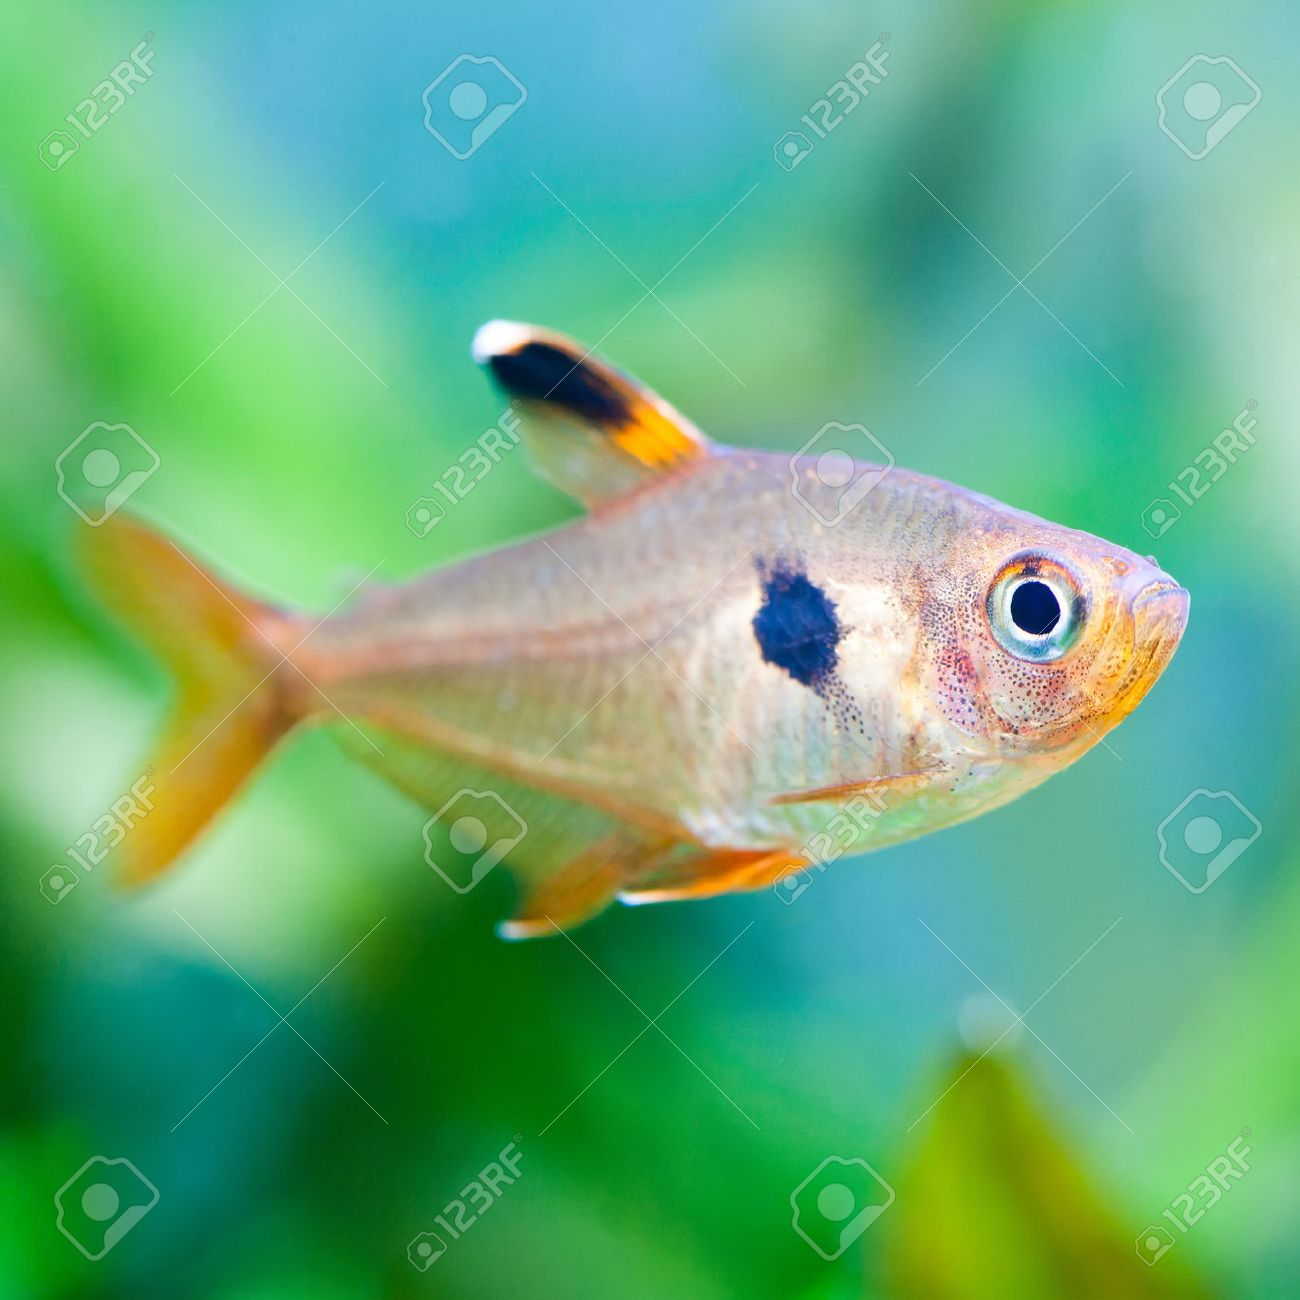 Freshwater aquarium fish photos - Aquarium Fish Rosy Tetra Nature Tank Freshwater Tank A Green Beautiful Planted